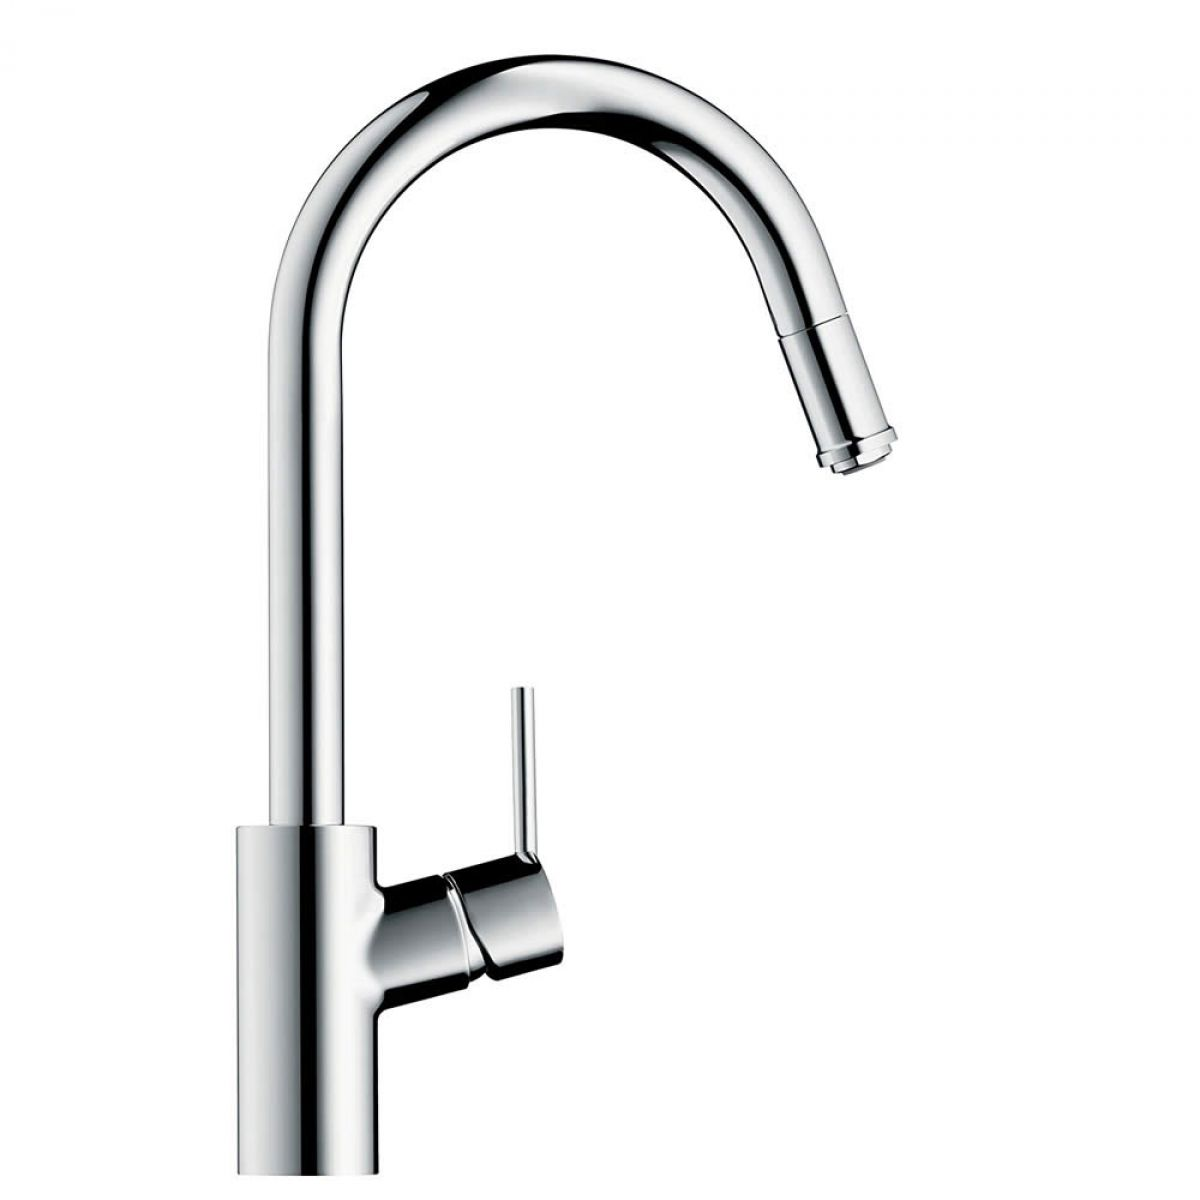 Remarkable Hansgrohe Talis S2 Variarc Kitchen Mixer Tap With Pull Out Download Free Architecture Designs Intelgarnamadebymaigaardcom